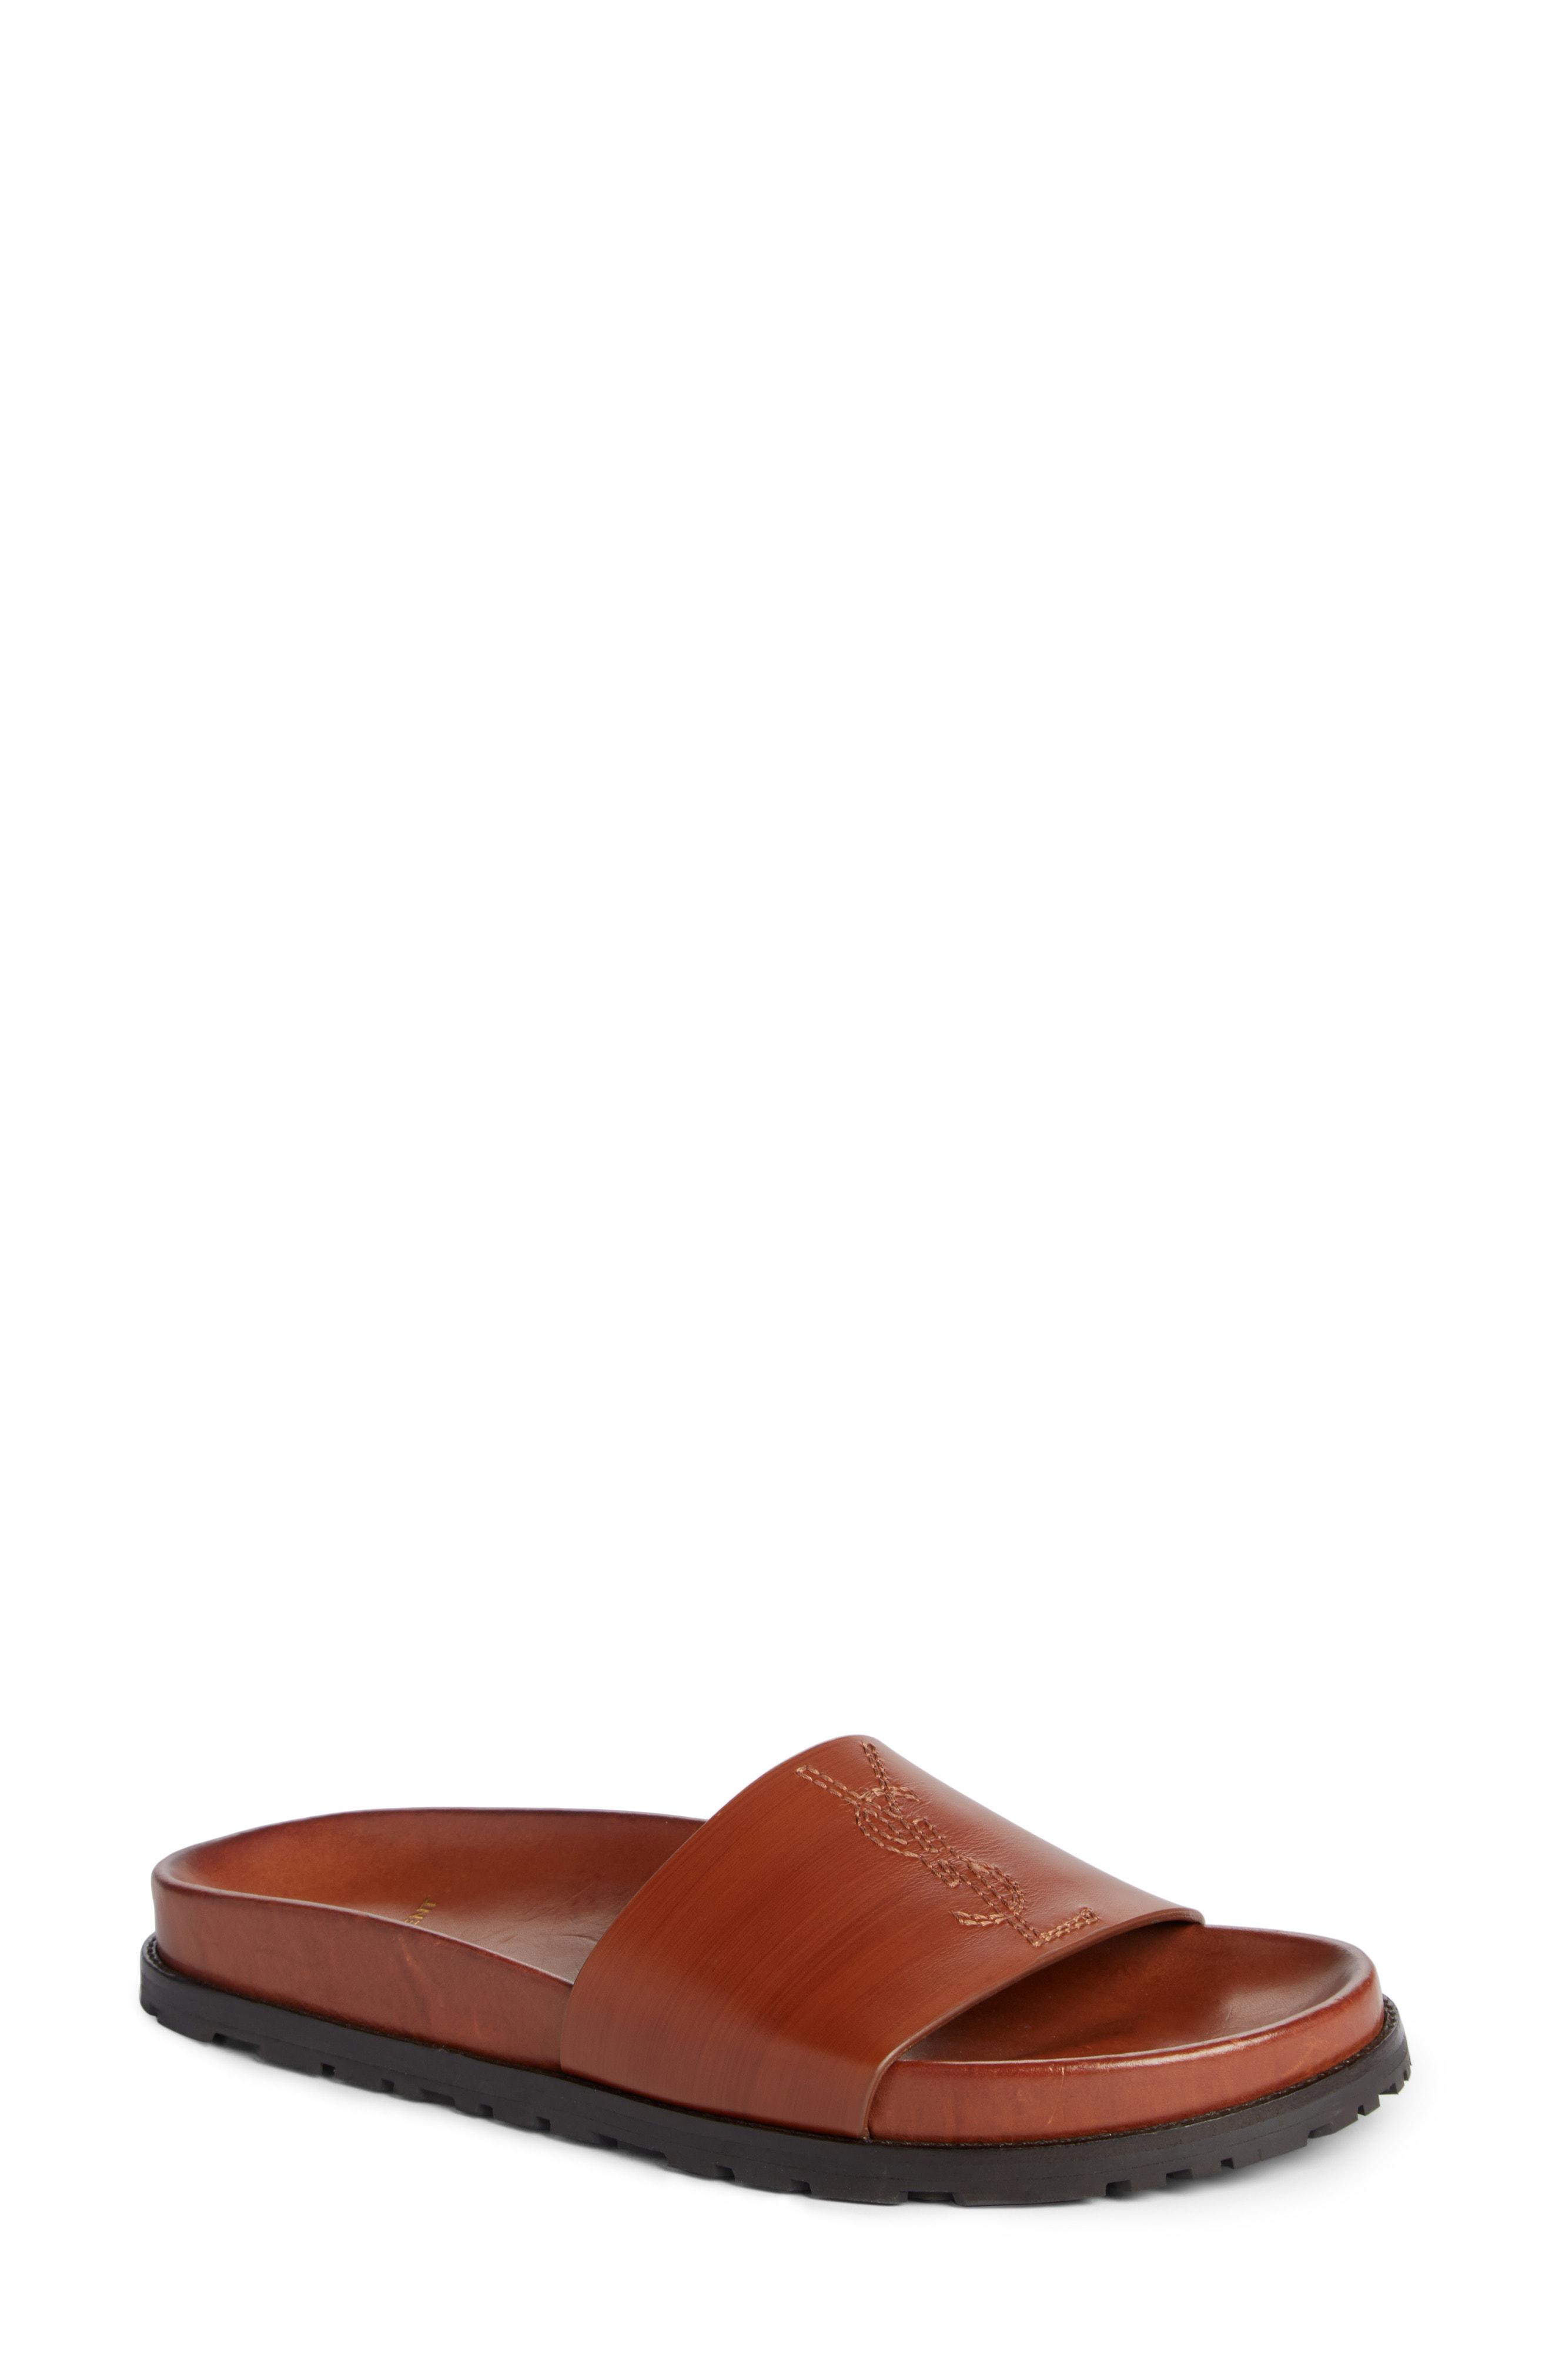 Jimmy Logo Slide Sandal by Saint Laurent, available on nordstrom.com Olivia Culpo Shoes Exact Product